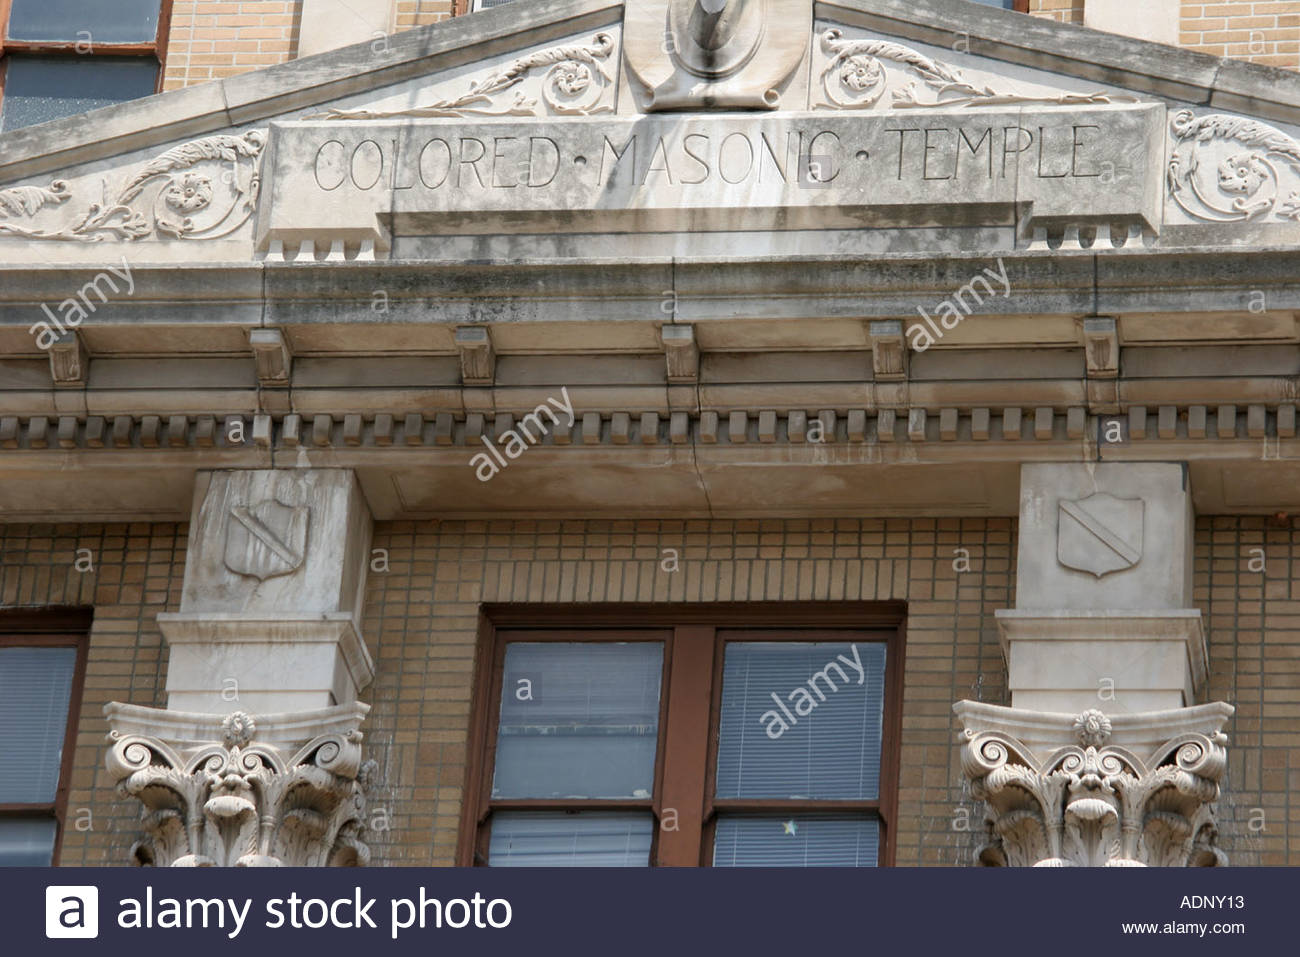 Birmingham Alabama Colored Masonic Temple Black History racial segregation - Stock Image